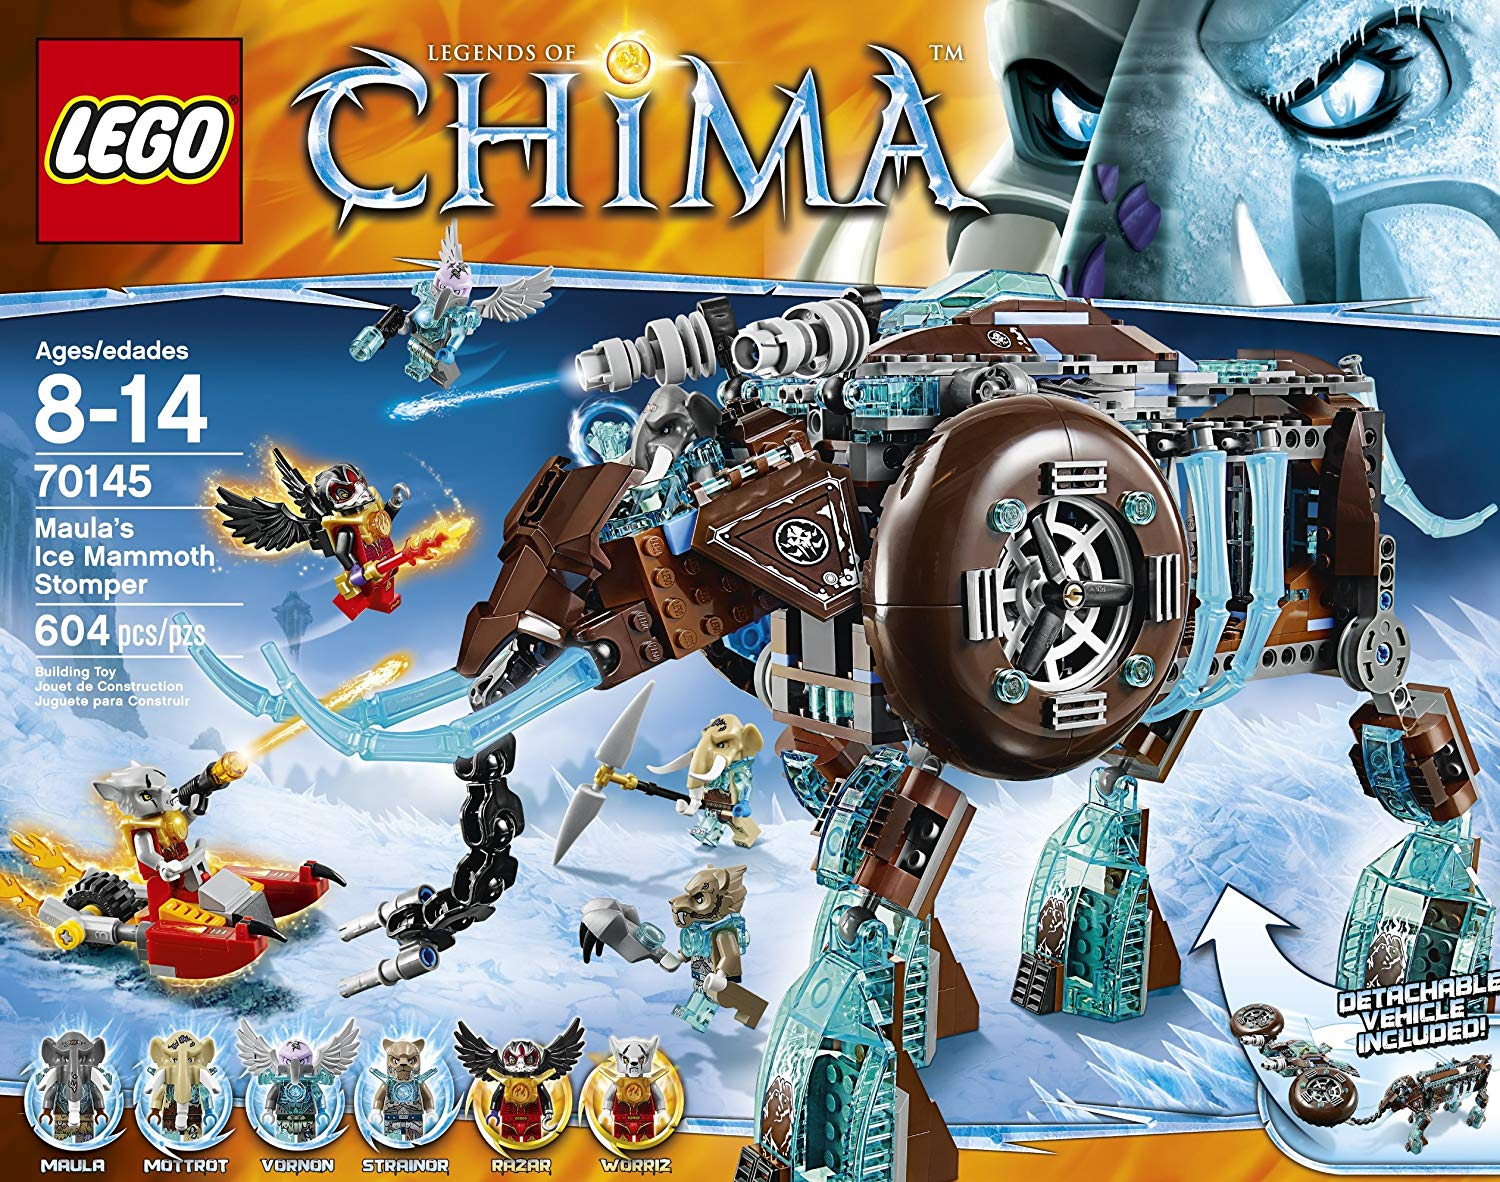 Brick From Monday Lego Deals AmazonnewsThe Cyber Brothers Y7v6ymbfIg